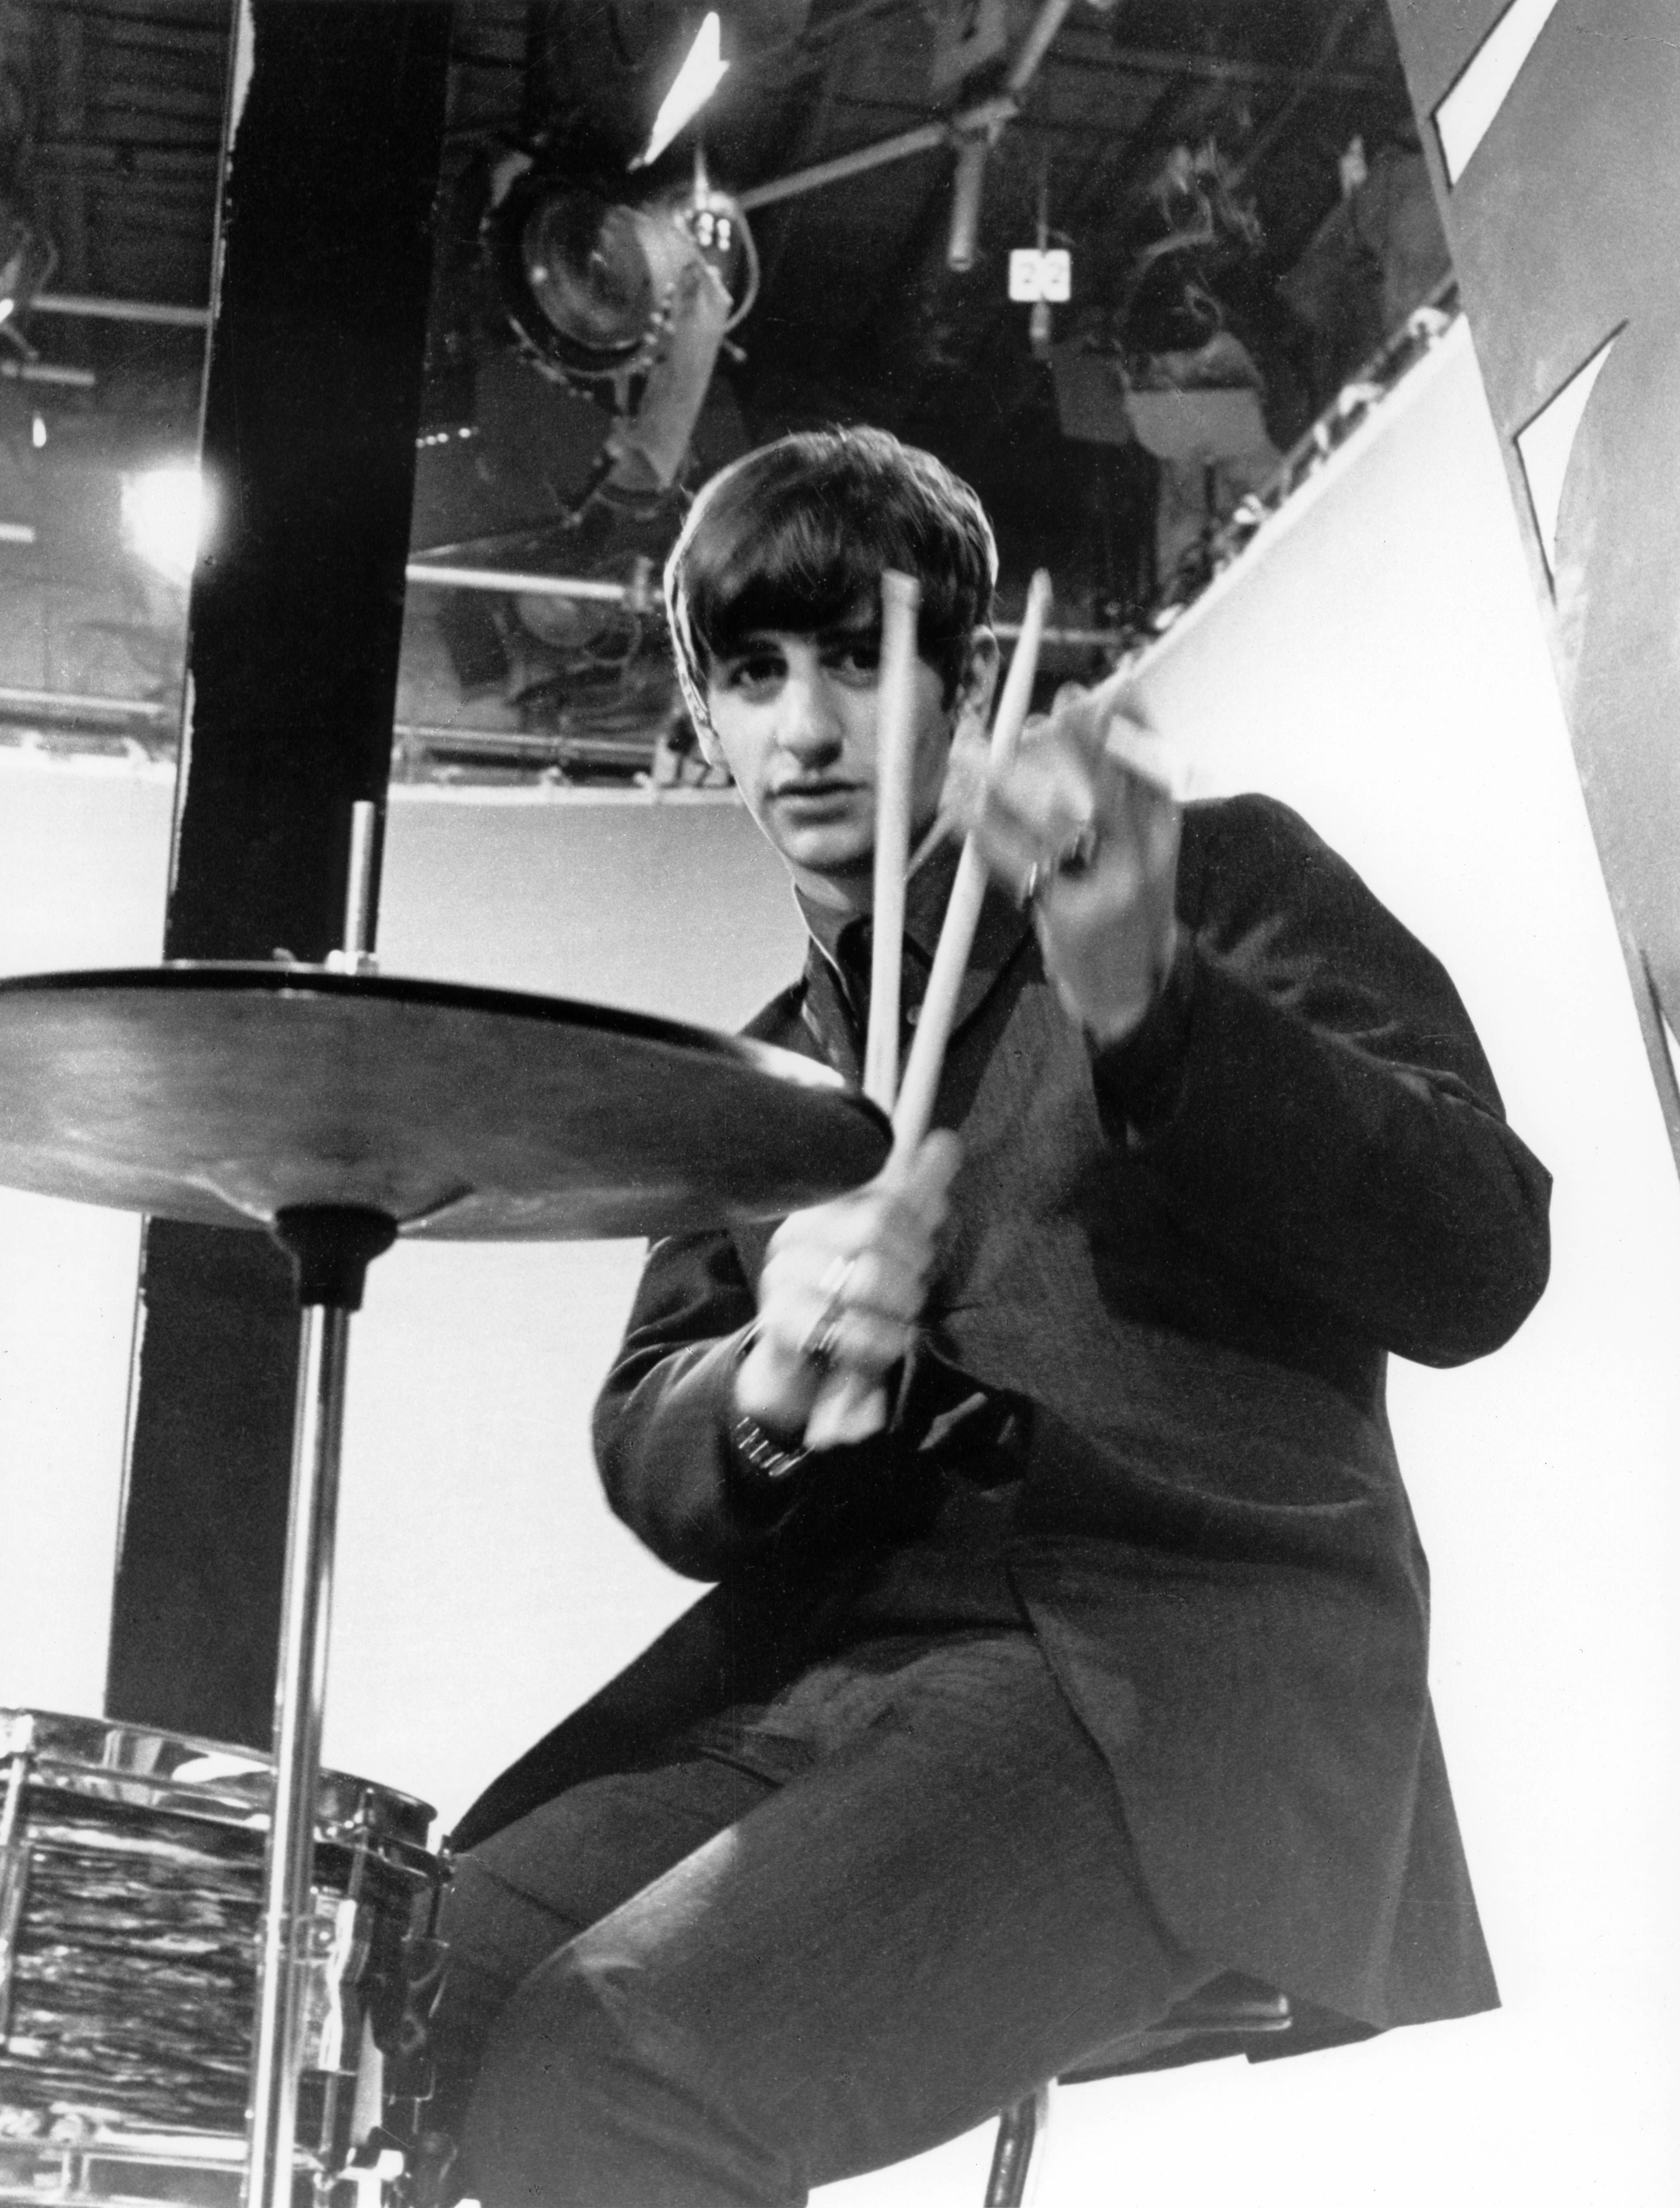 Ringo Starr With The Beatles Posed Holding Drum Sticks At Alpha